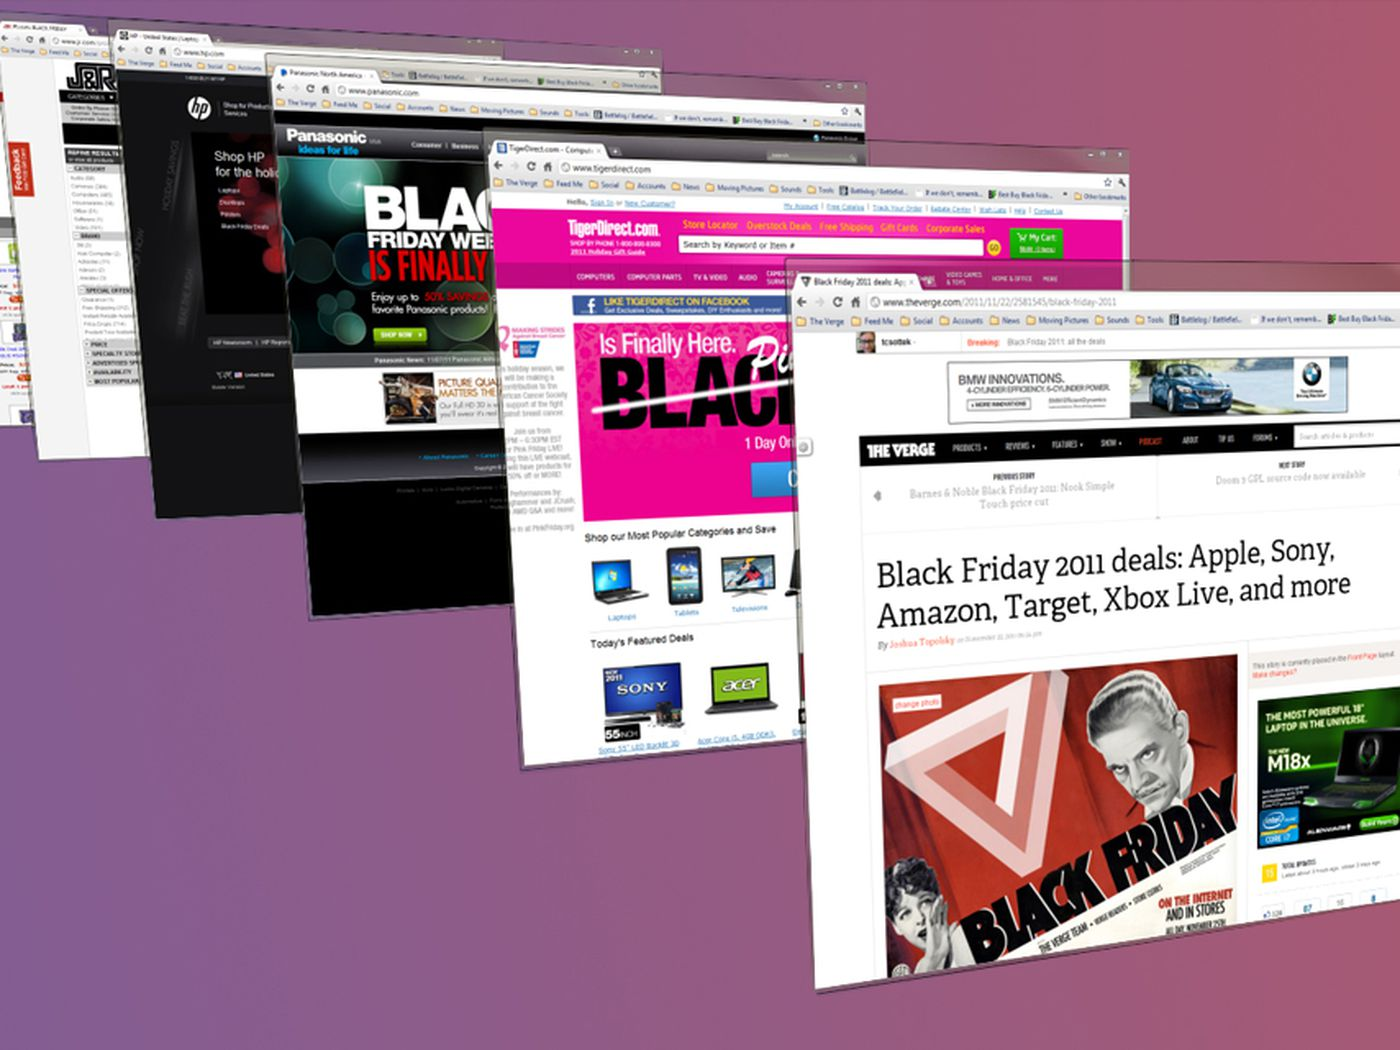 Black Friday 2011 Extra Deals Around The Web Laptops Cameras Ssds And More The Verge